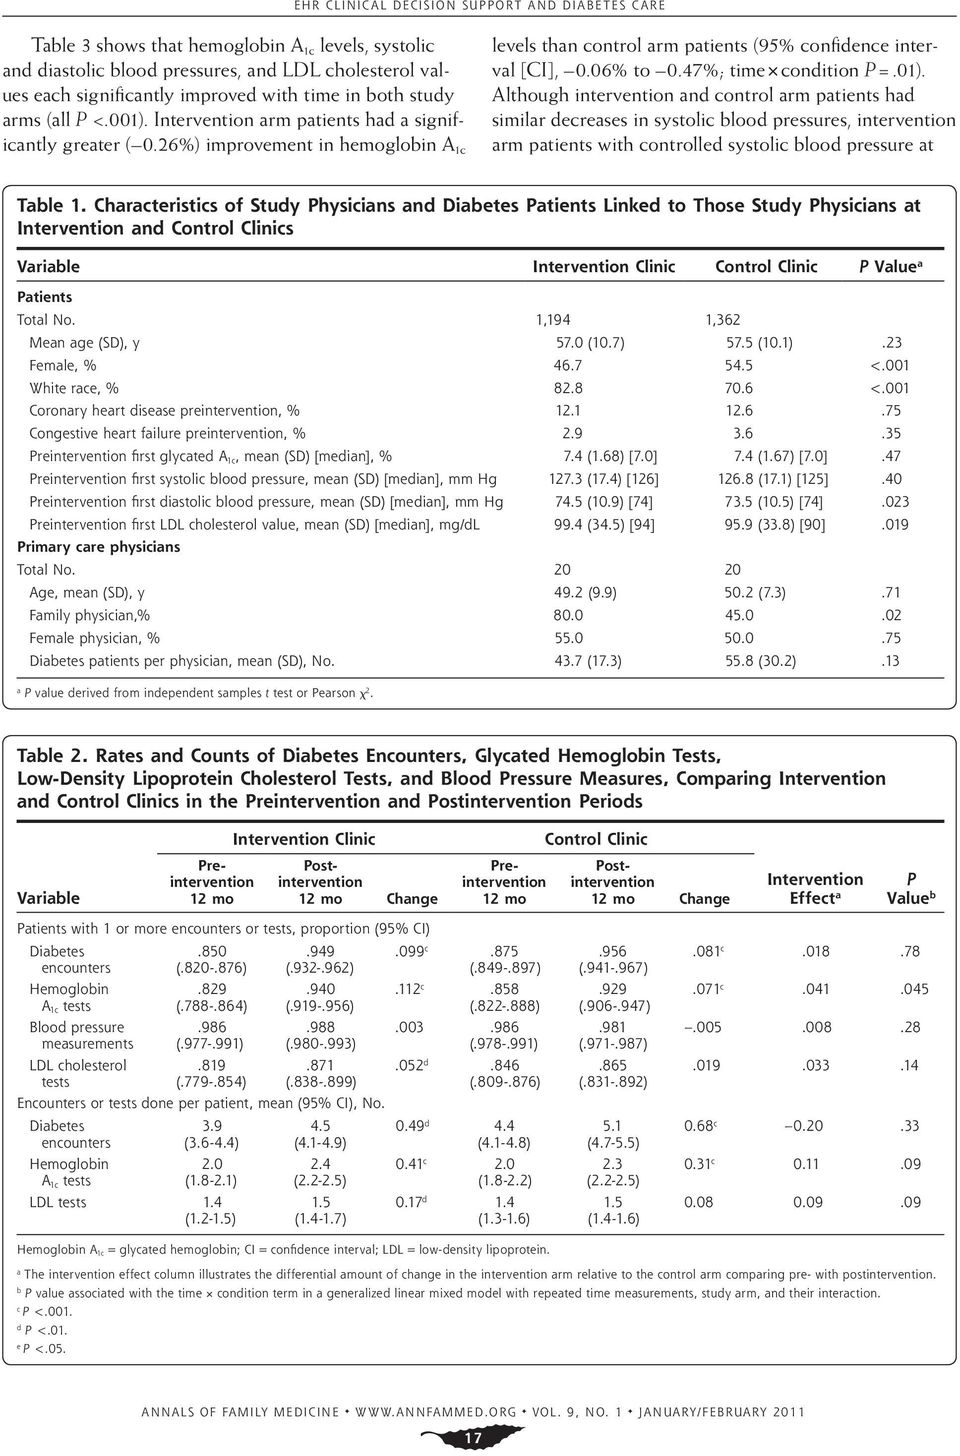 Although intervention and control arm patients had similar decreases in systolic blood pressures, intervention arm patients with controlled systolic blood pressure at Table 1.